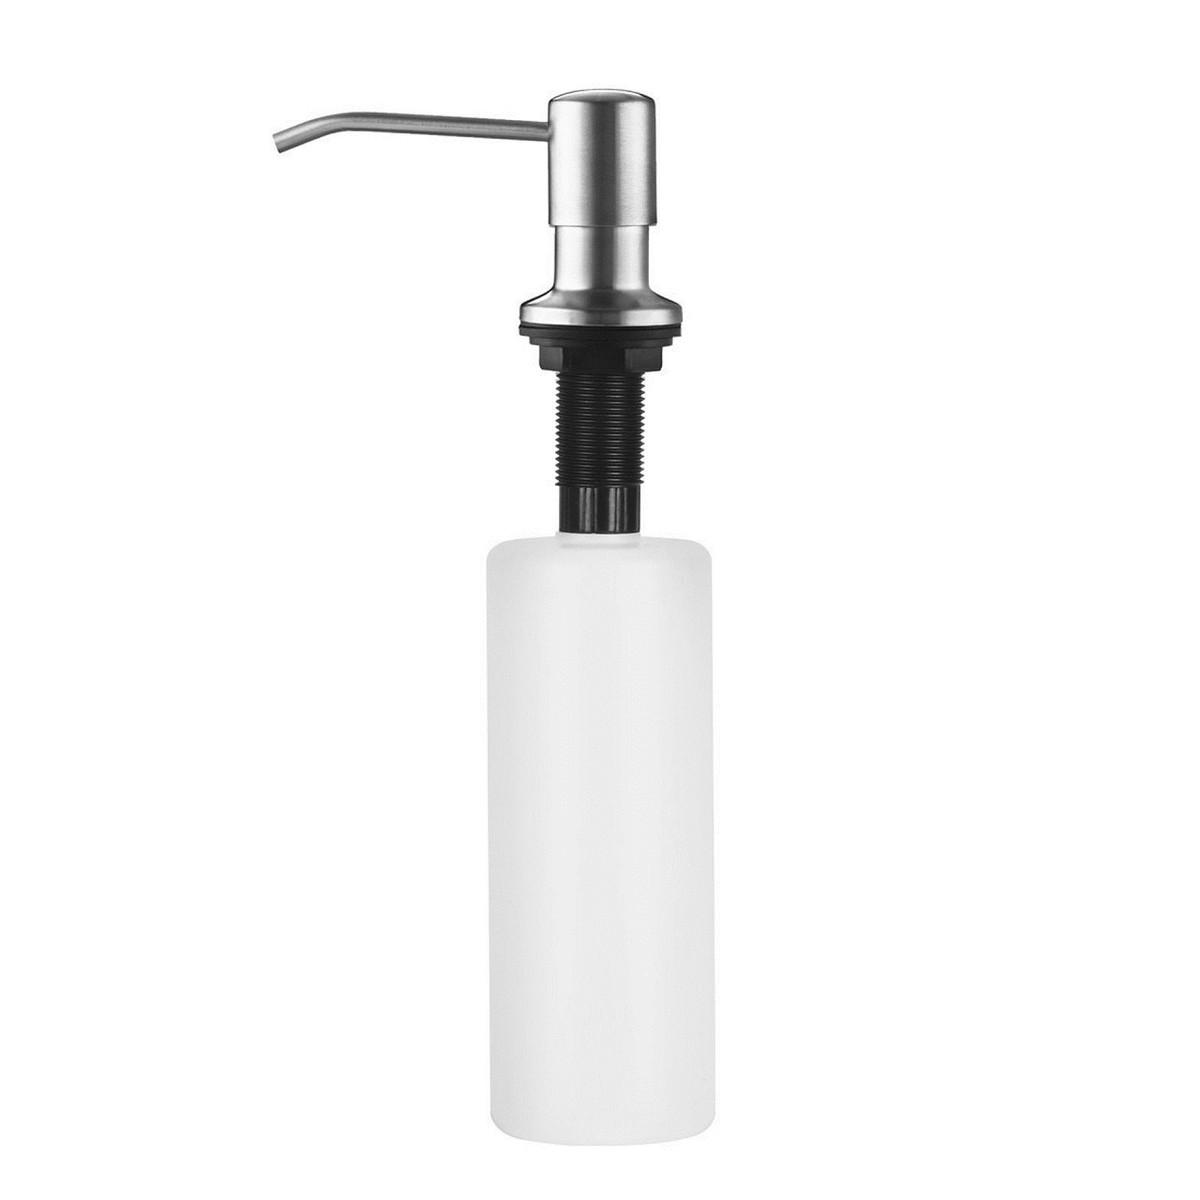 300 ml Classic Putih Dibangun Di Pompa Tekan Sabun Dispenser Kitchen Bathroom Sink Sabun Pompa Tangan Cair